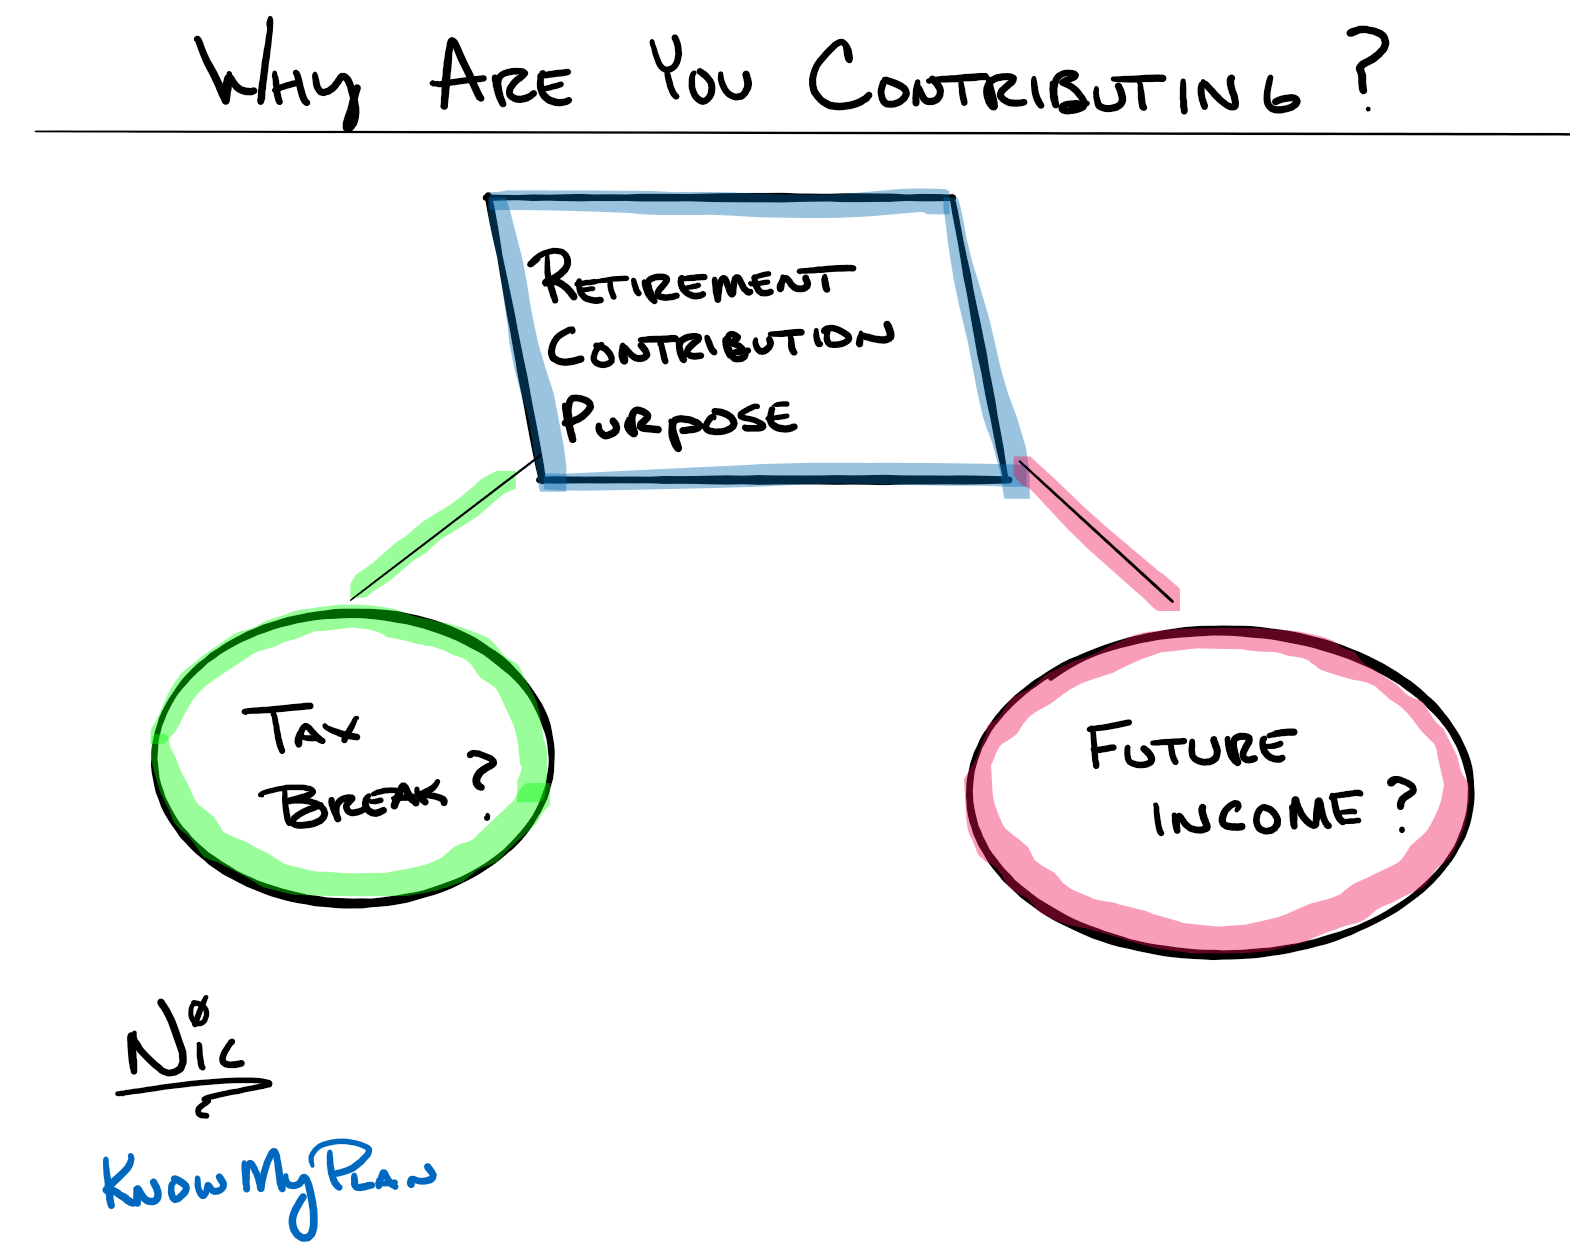 Why Are You Contributing to A Retirement Plan? Thumbnail